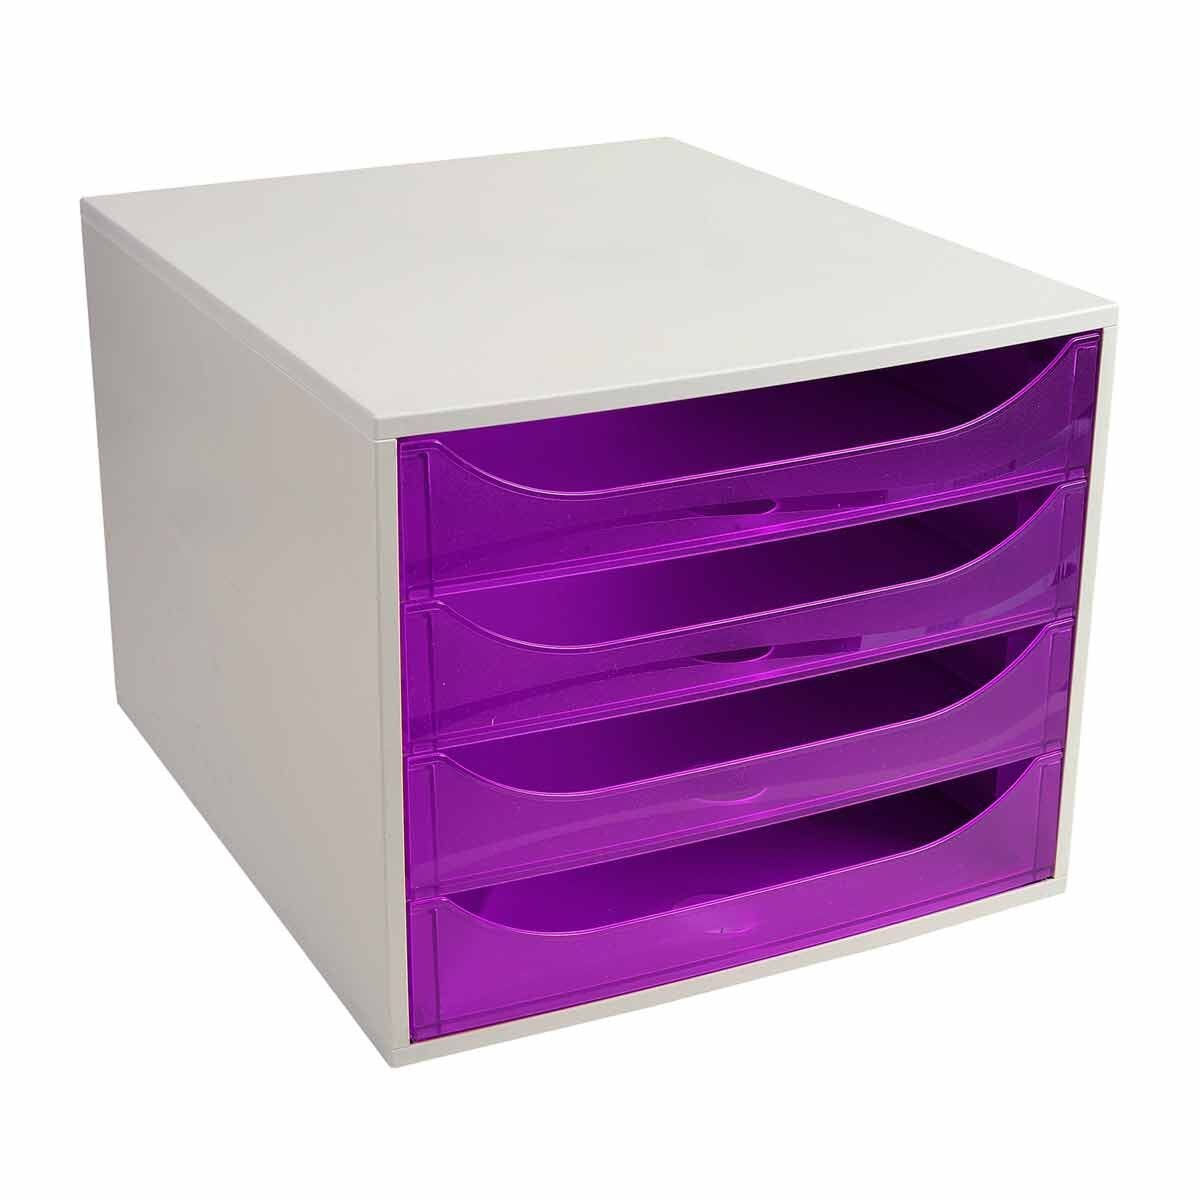 Exacompta ECO BOX 4 Drawer Unit